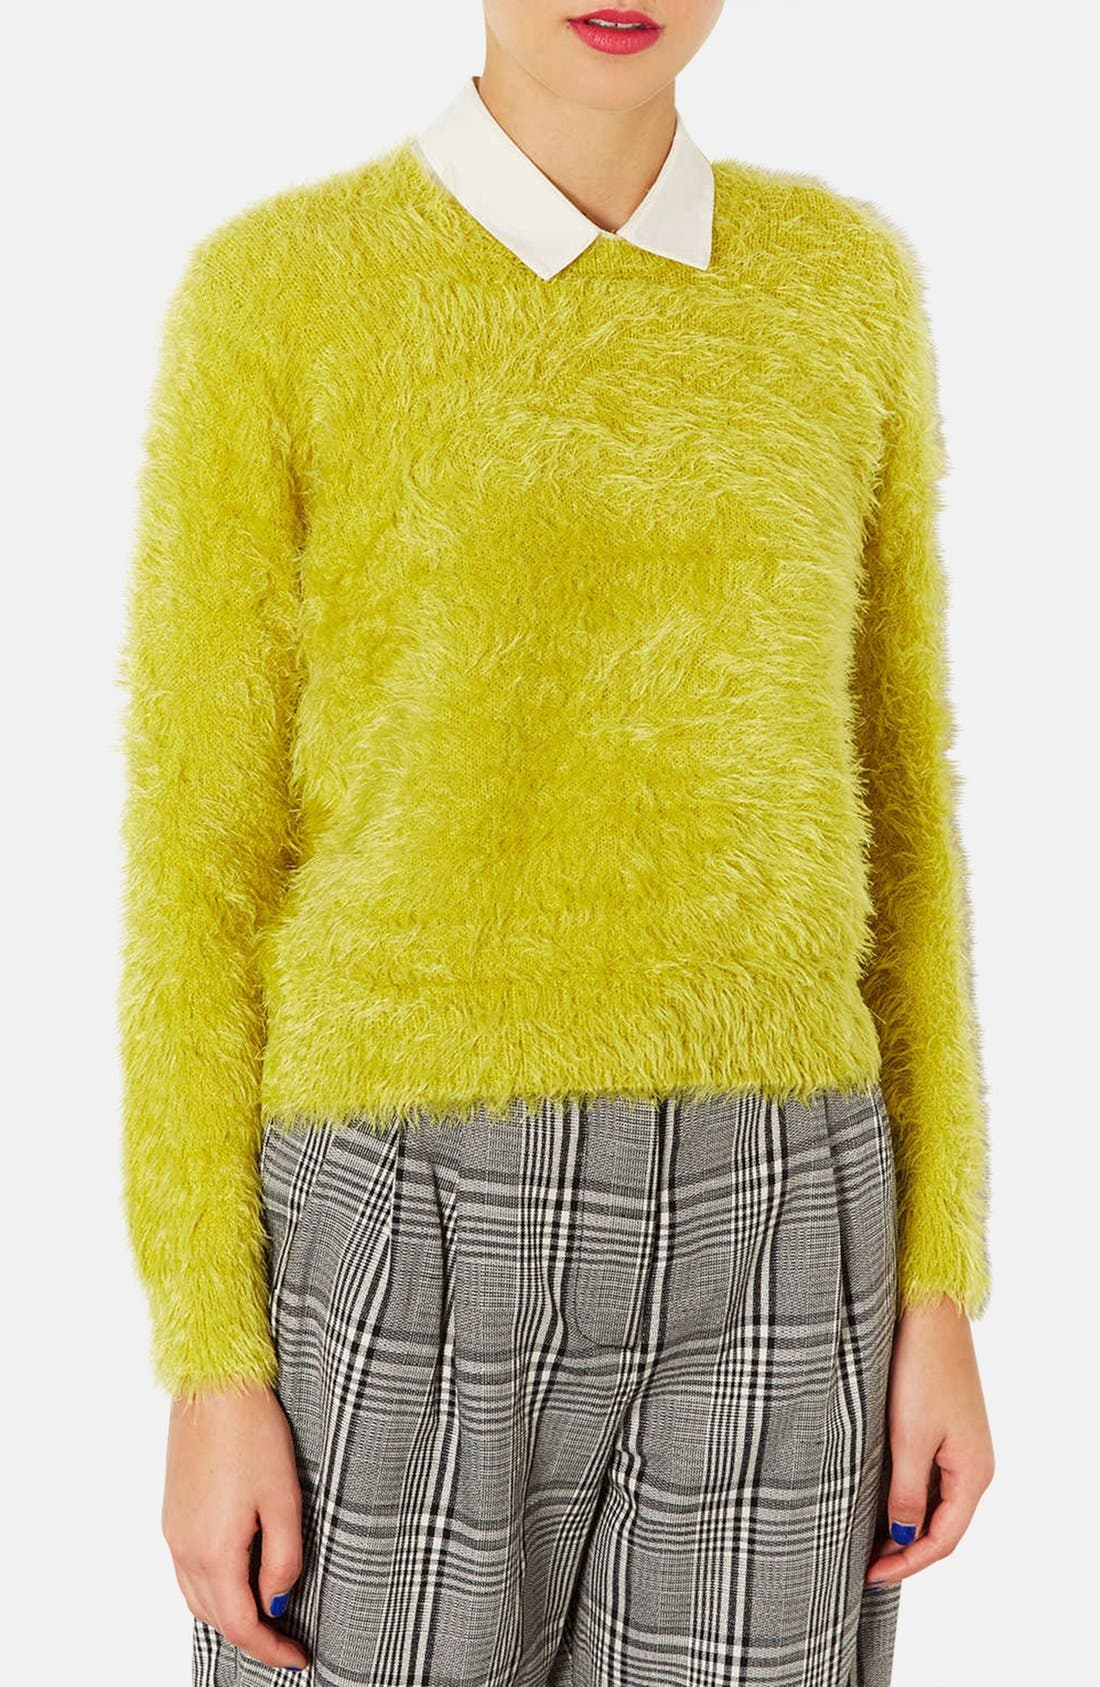 Alternate Image 1 Selected - Topshop Textured Crewneck Sweater (Petite)